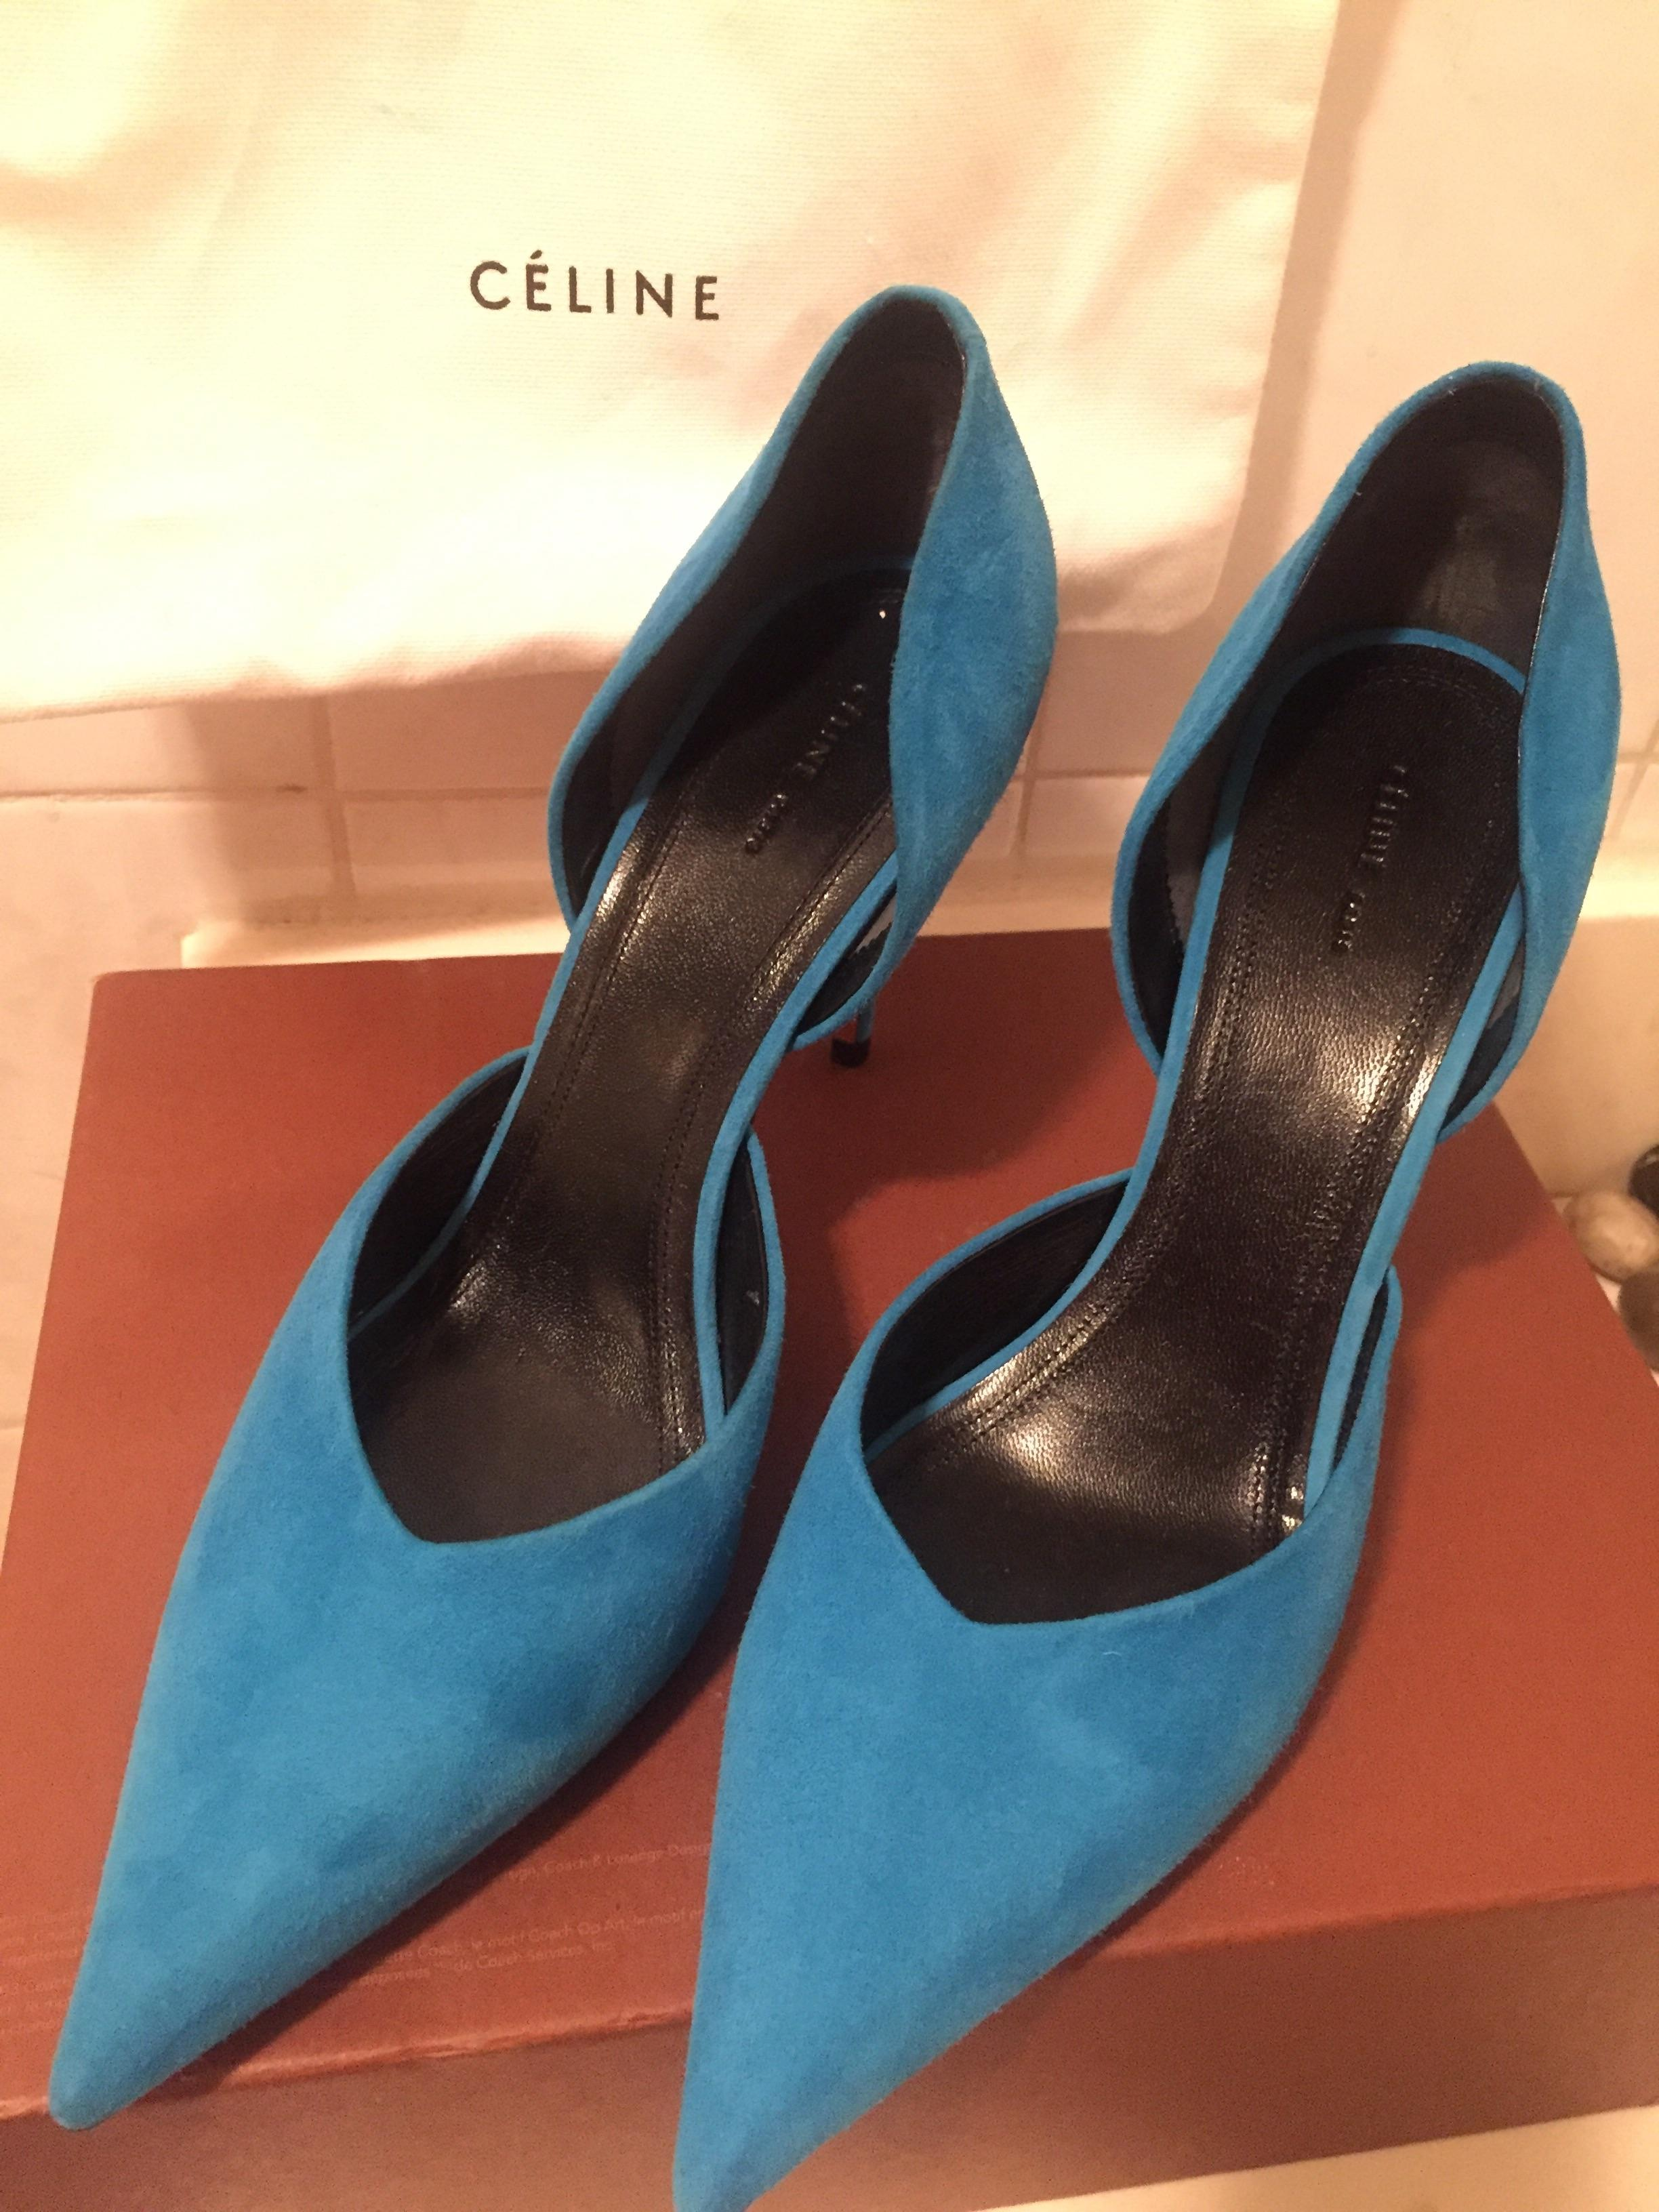 Céline Suede D'Orsay Pumps under $60 cheap online discount low shipping fee get authentic for sale free shipping really official site DVmuo26WNf